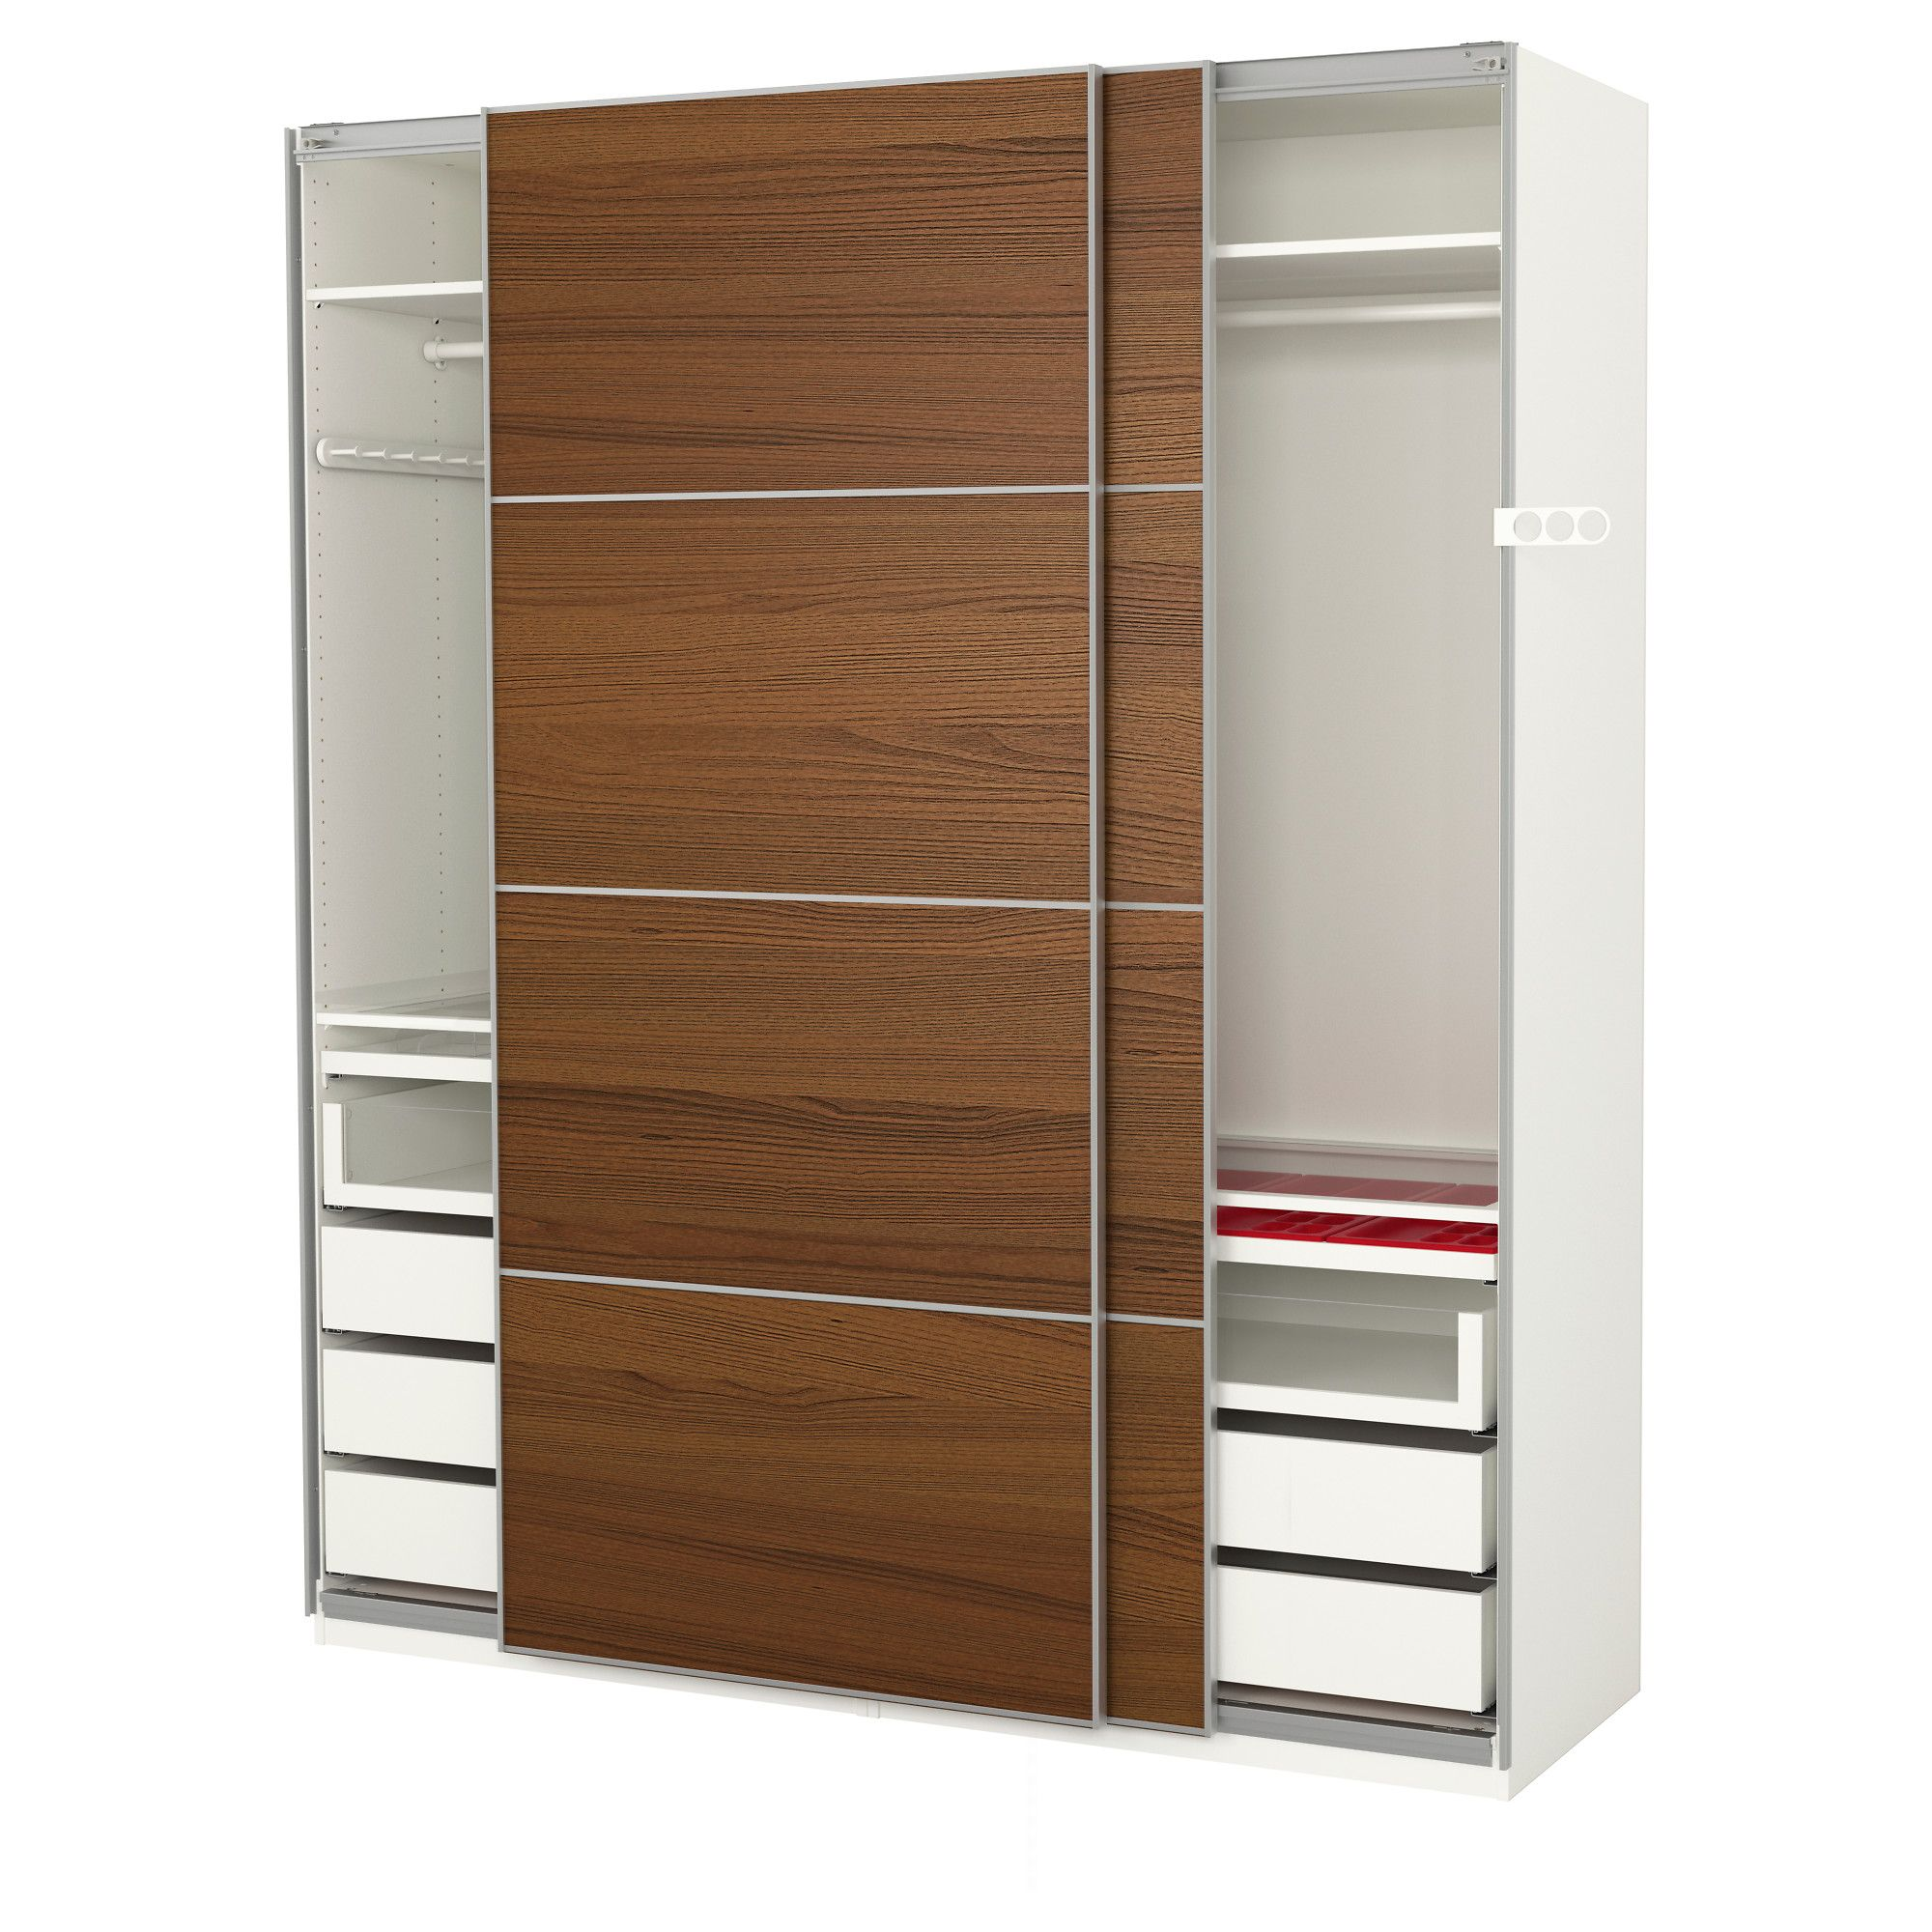 Armadio Pax Ebay Ikea Pax White Ilseng Brown Stained Ash Veneer Wardrobe In 2019